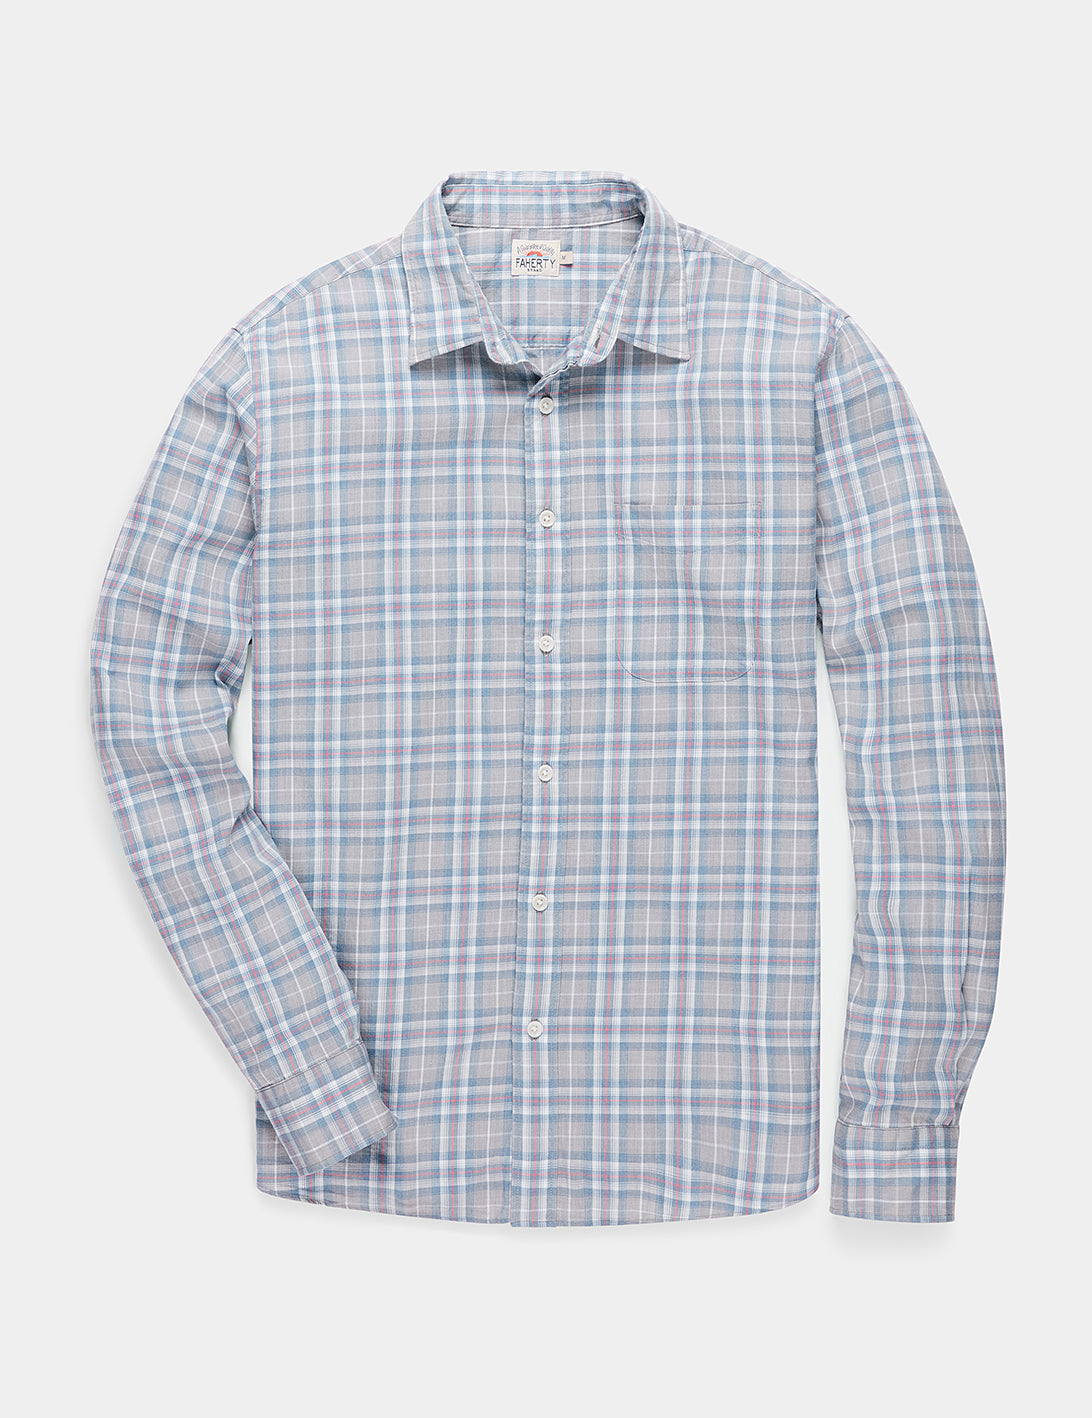 Heathered Movement Shirt in Monterey Plaid